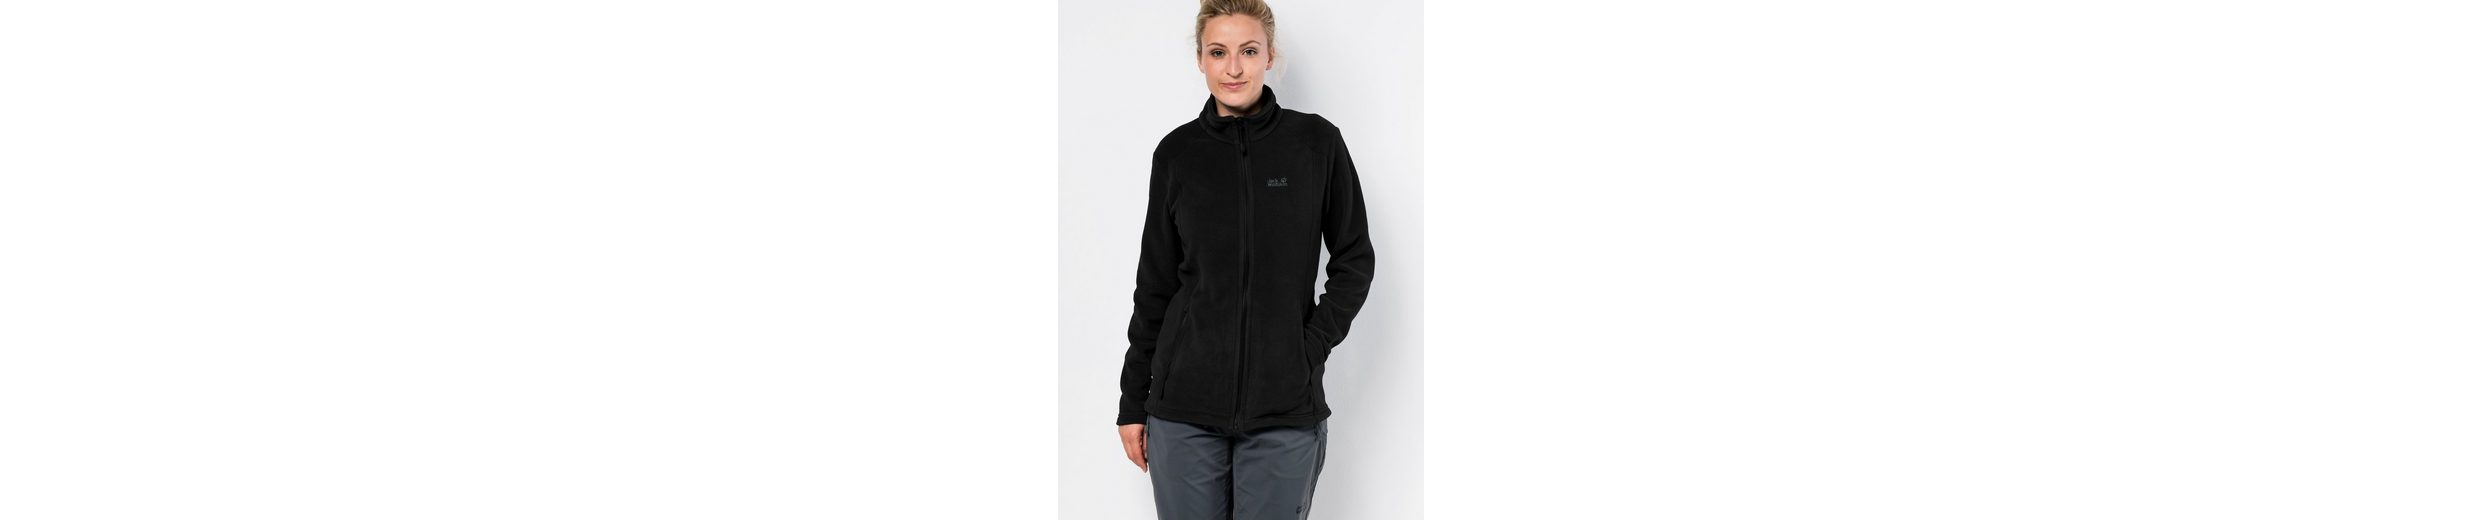 Jack Wolfskin Fleecejacke MIDNIGHT MOON WOMEN Mode Online-Verkauf 4TyJsrI34